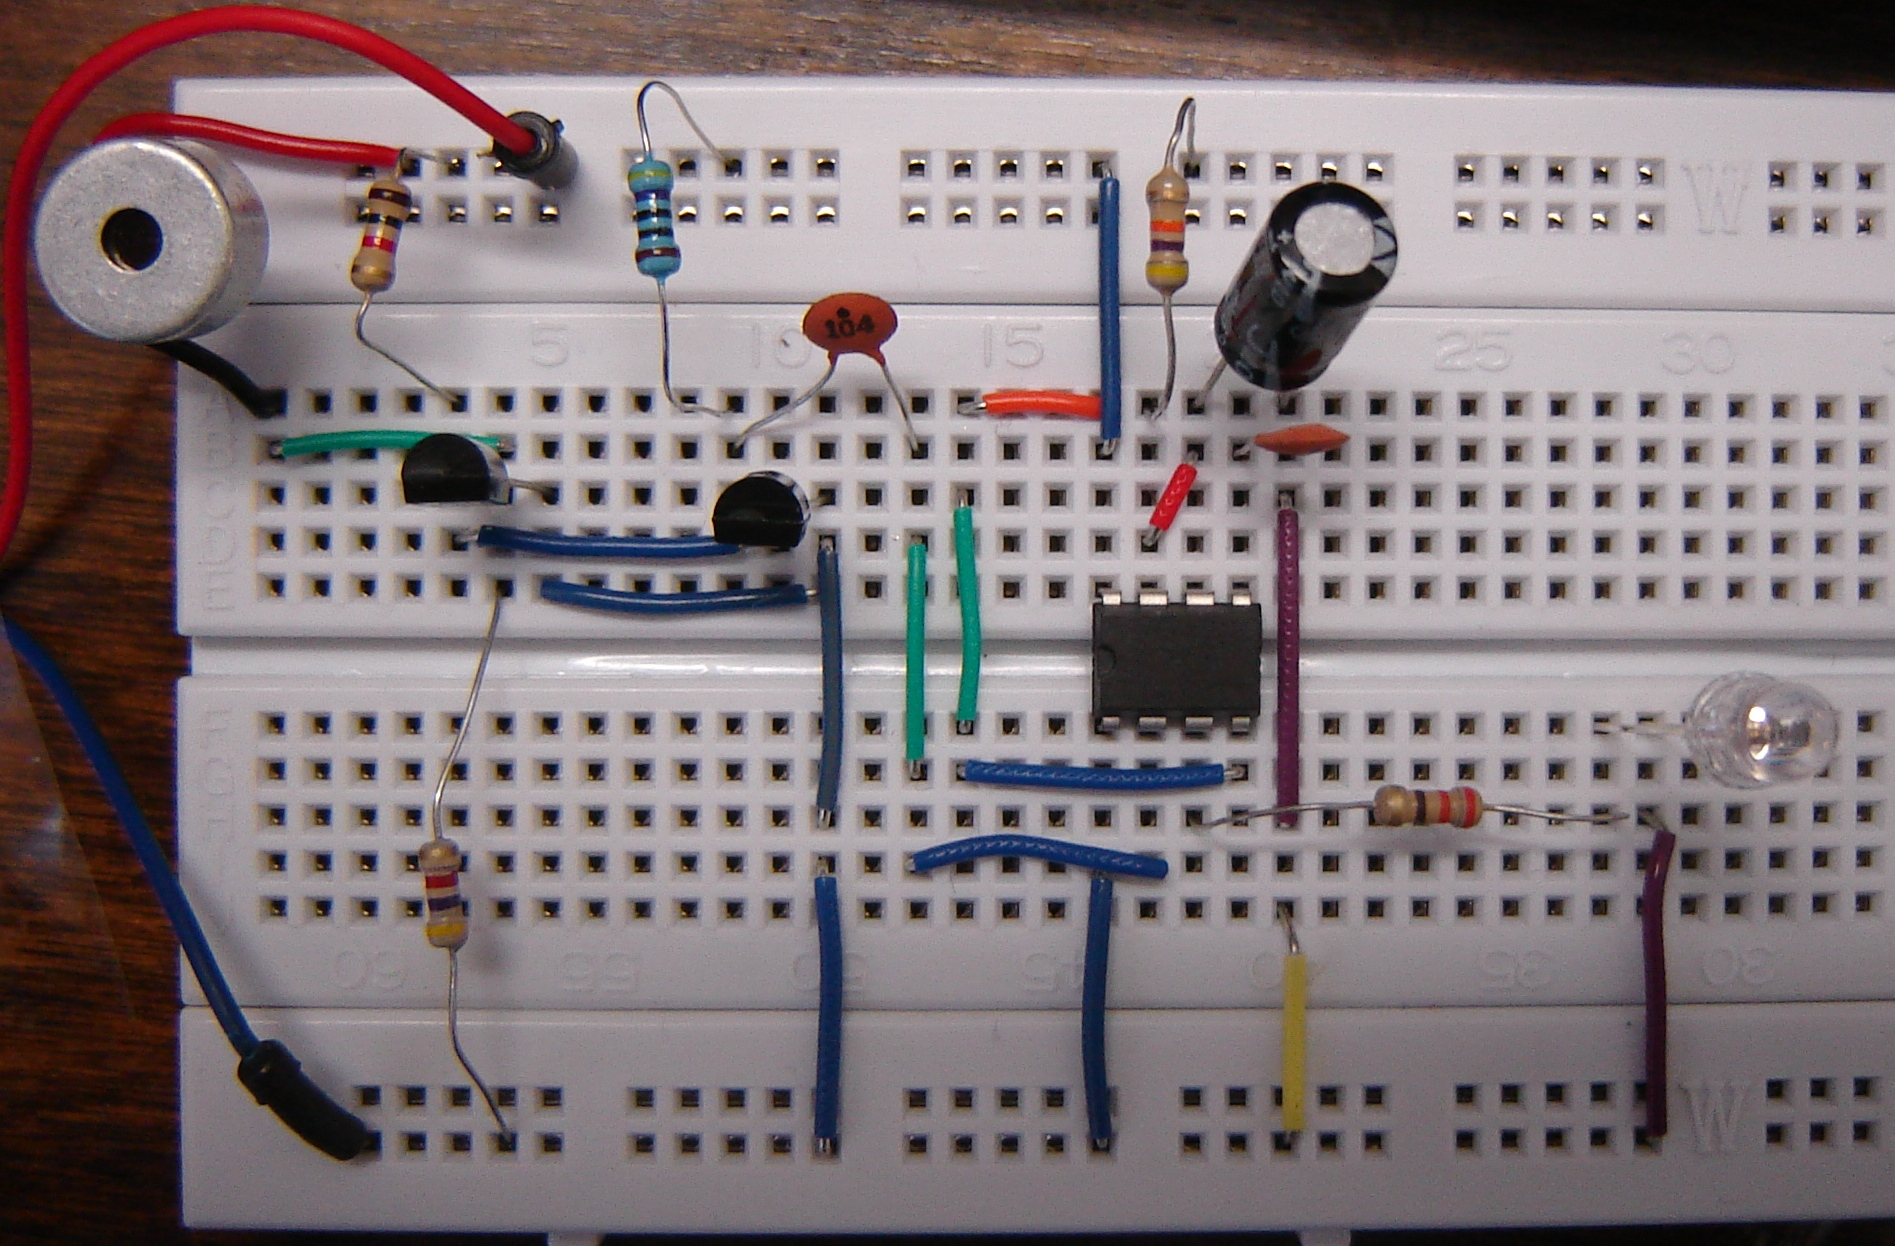 Troubleshooting Electronic Projects Buildcircuit Electronics 555 Timer A Complete Basic Guide